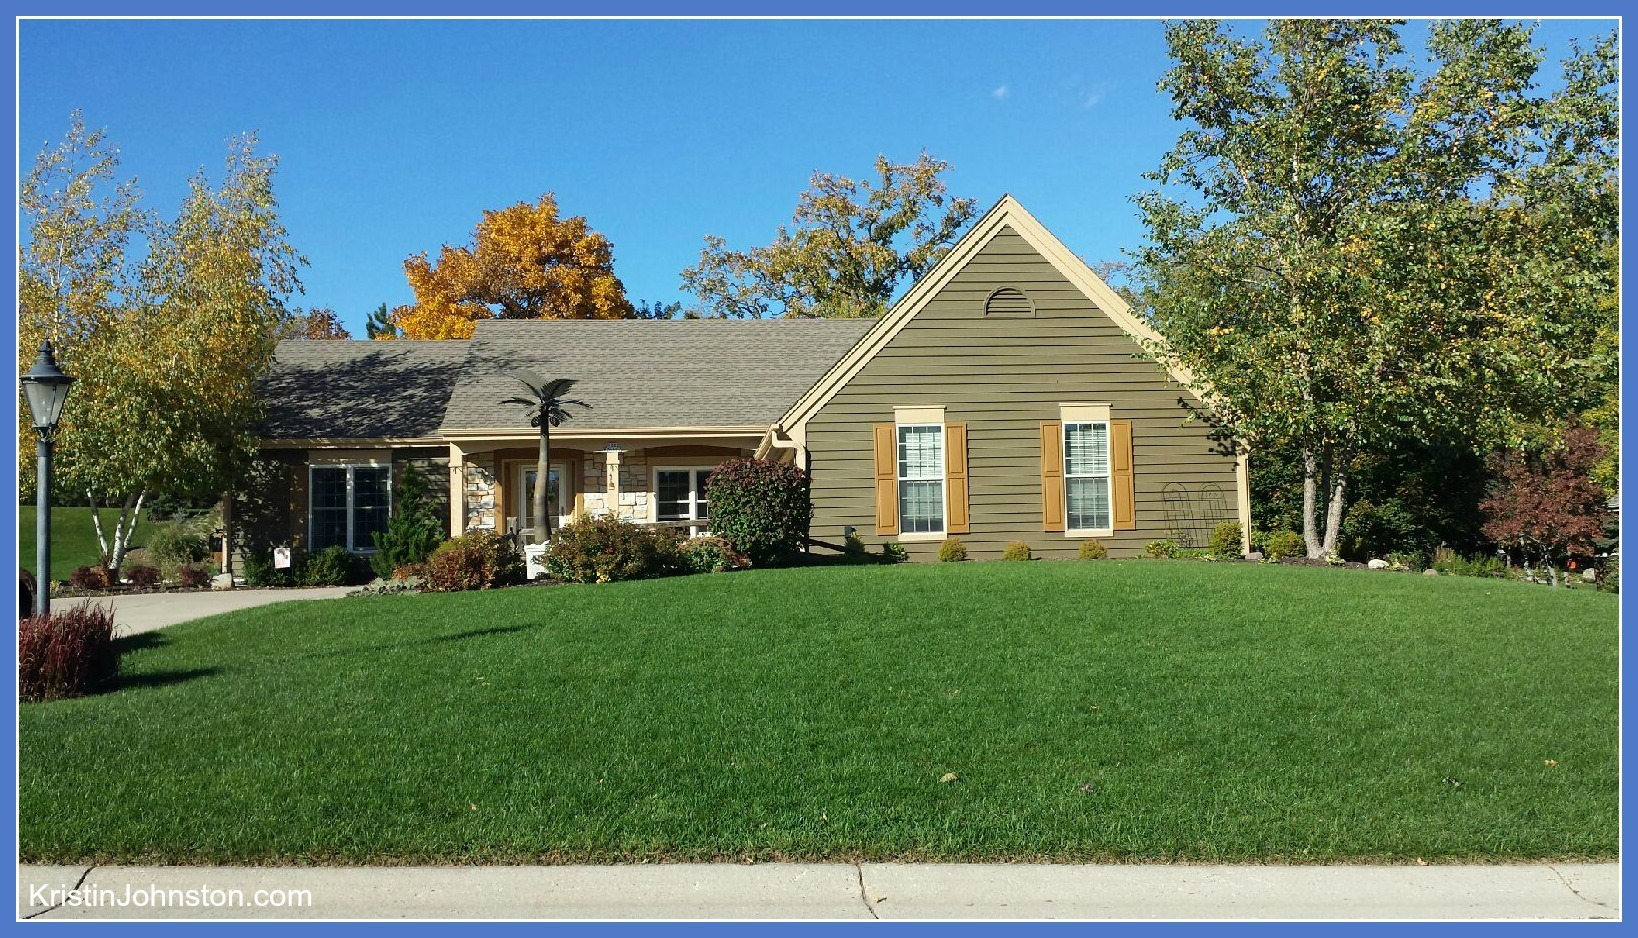 Oconomowoc WI Homes for Sale